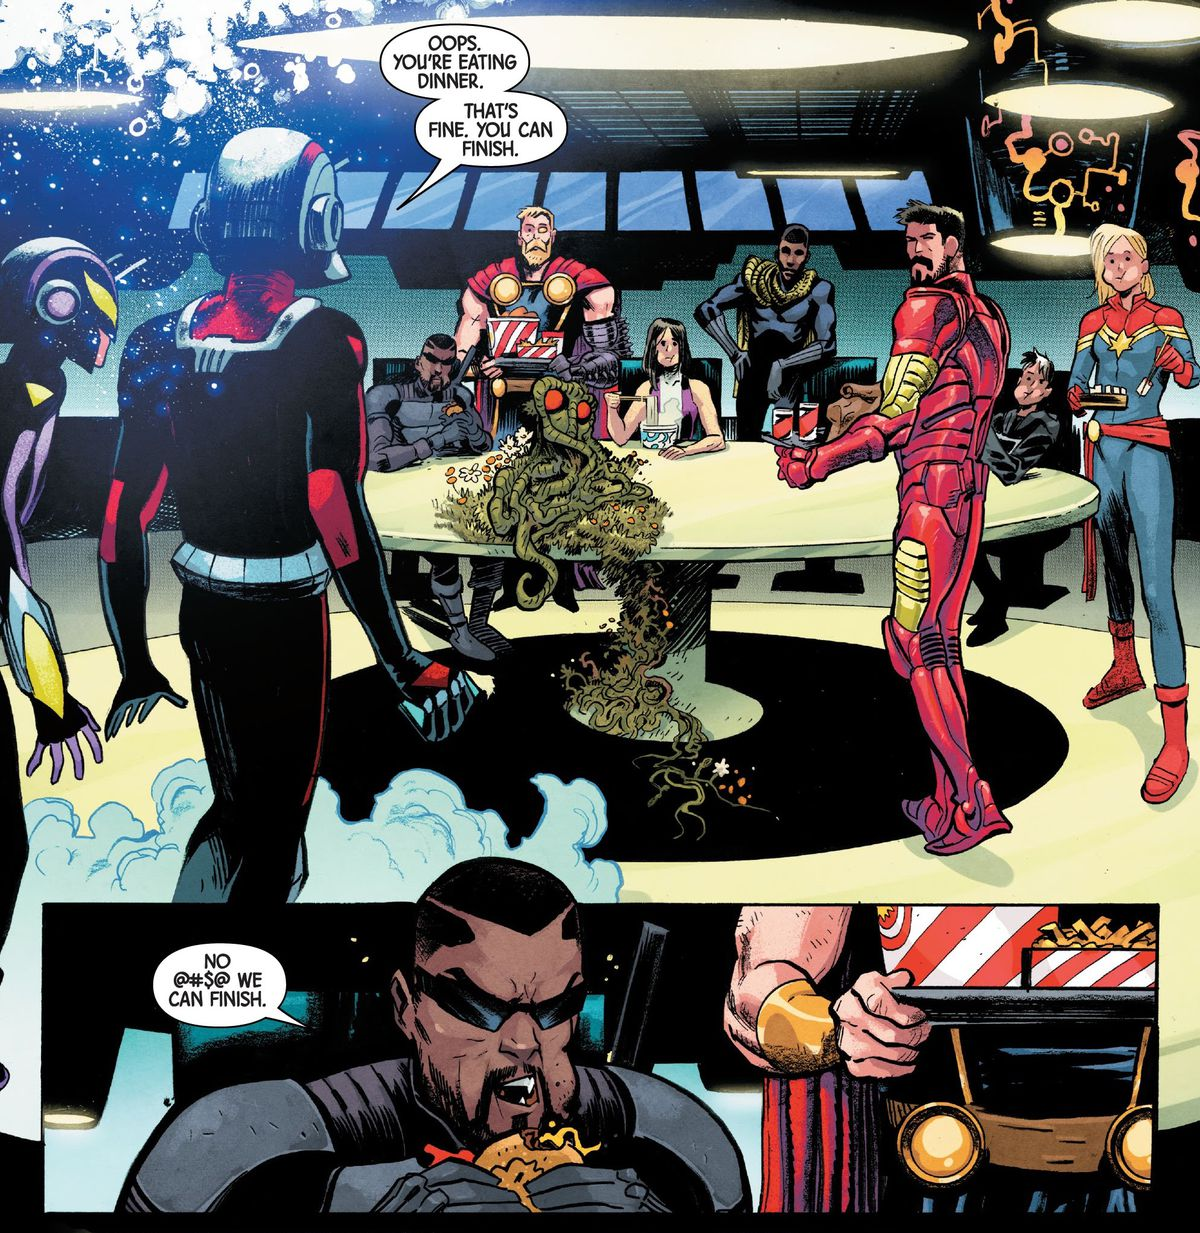 """Ant-Man appears before the Avengers, who are gathered around a table eating fast food. """"Oops,"""" he says, """"you're eating dinner. That's fine. You can finish."""" """"No @#$@ we can finish,"""" Blade snaps through a mouthful of hamburger, in Ant-Man #3, Marvel Comics (2020)."""